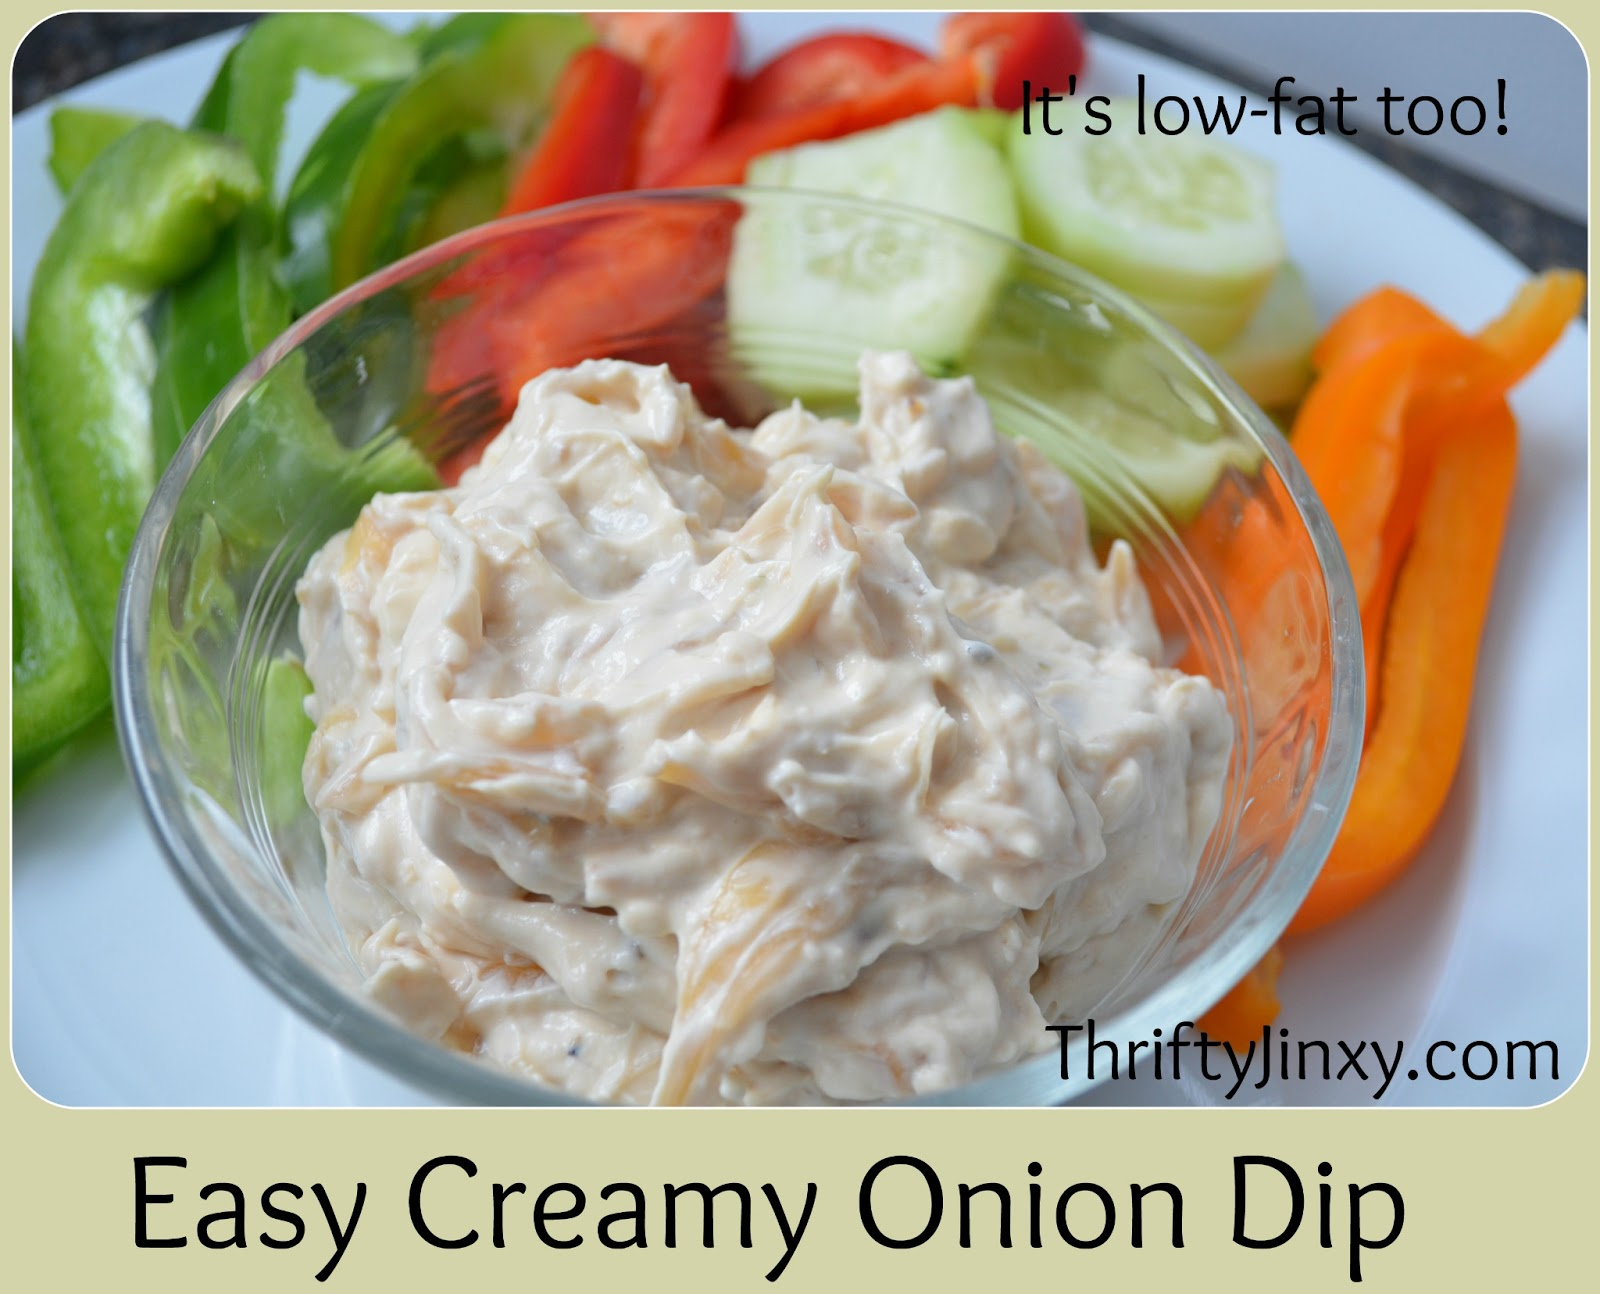 Low Calorie Onion Dip Recipe - Snack-Girl